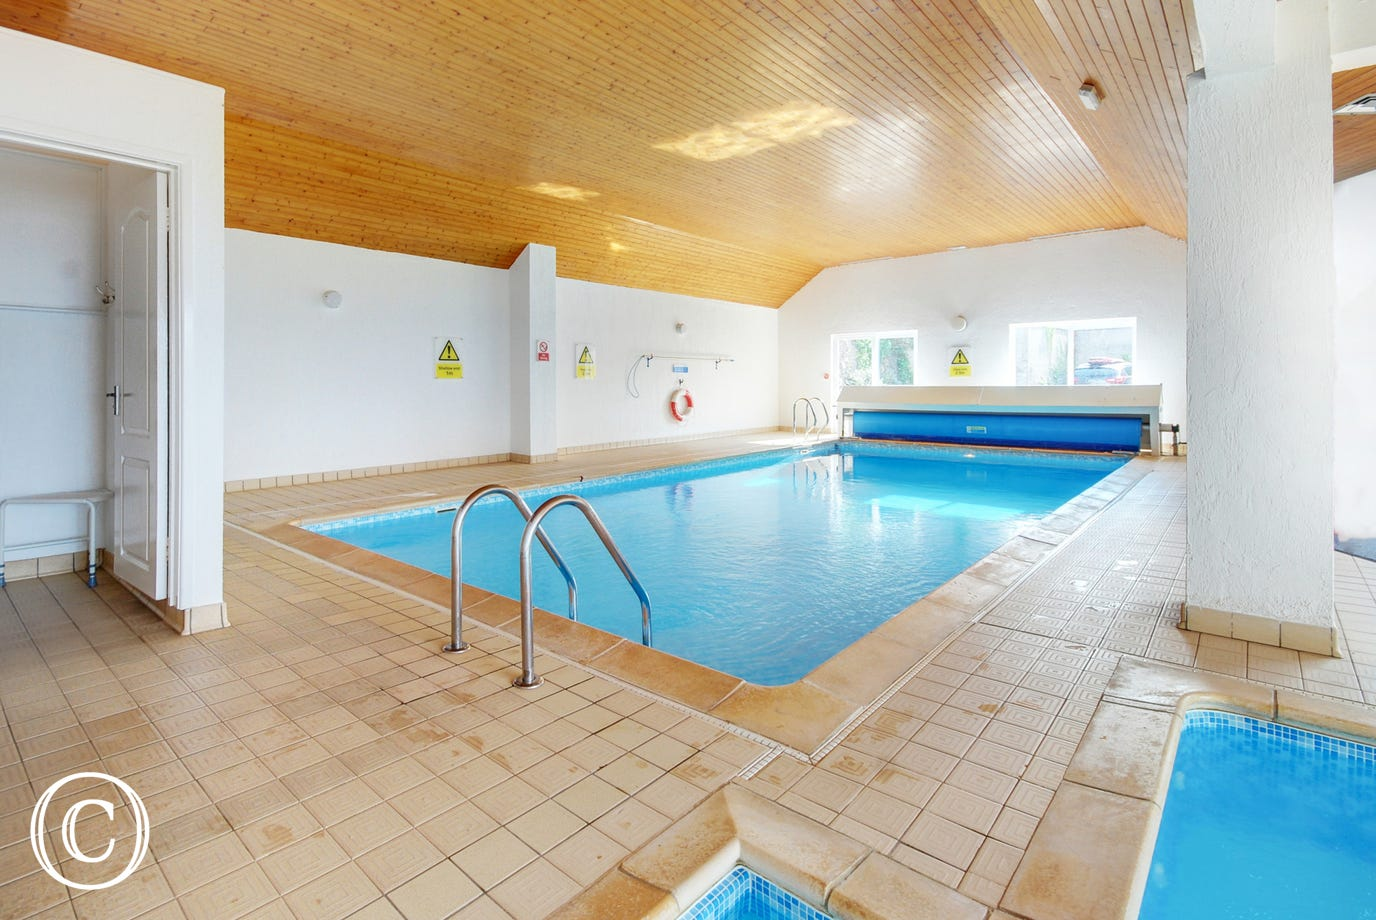 The communal heated indoor swimming pool is a real bonus